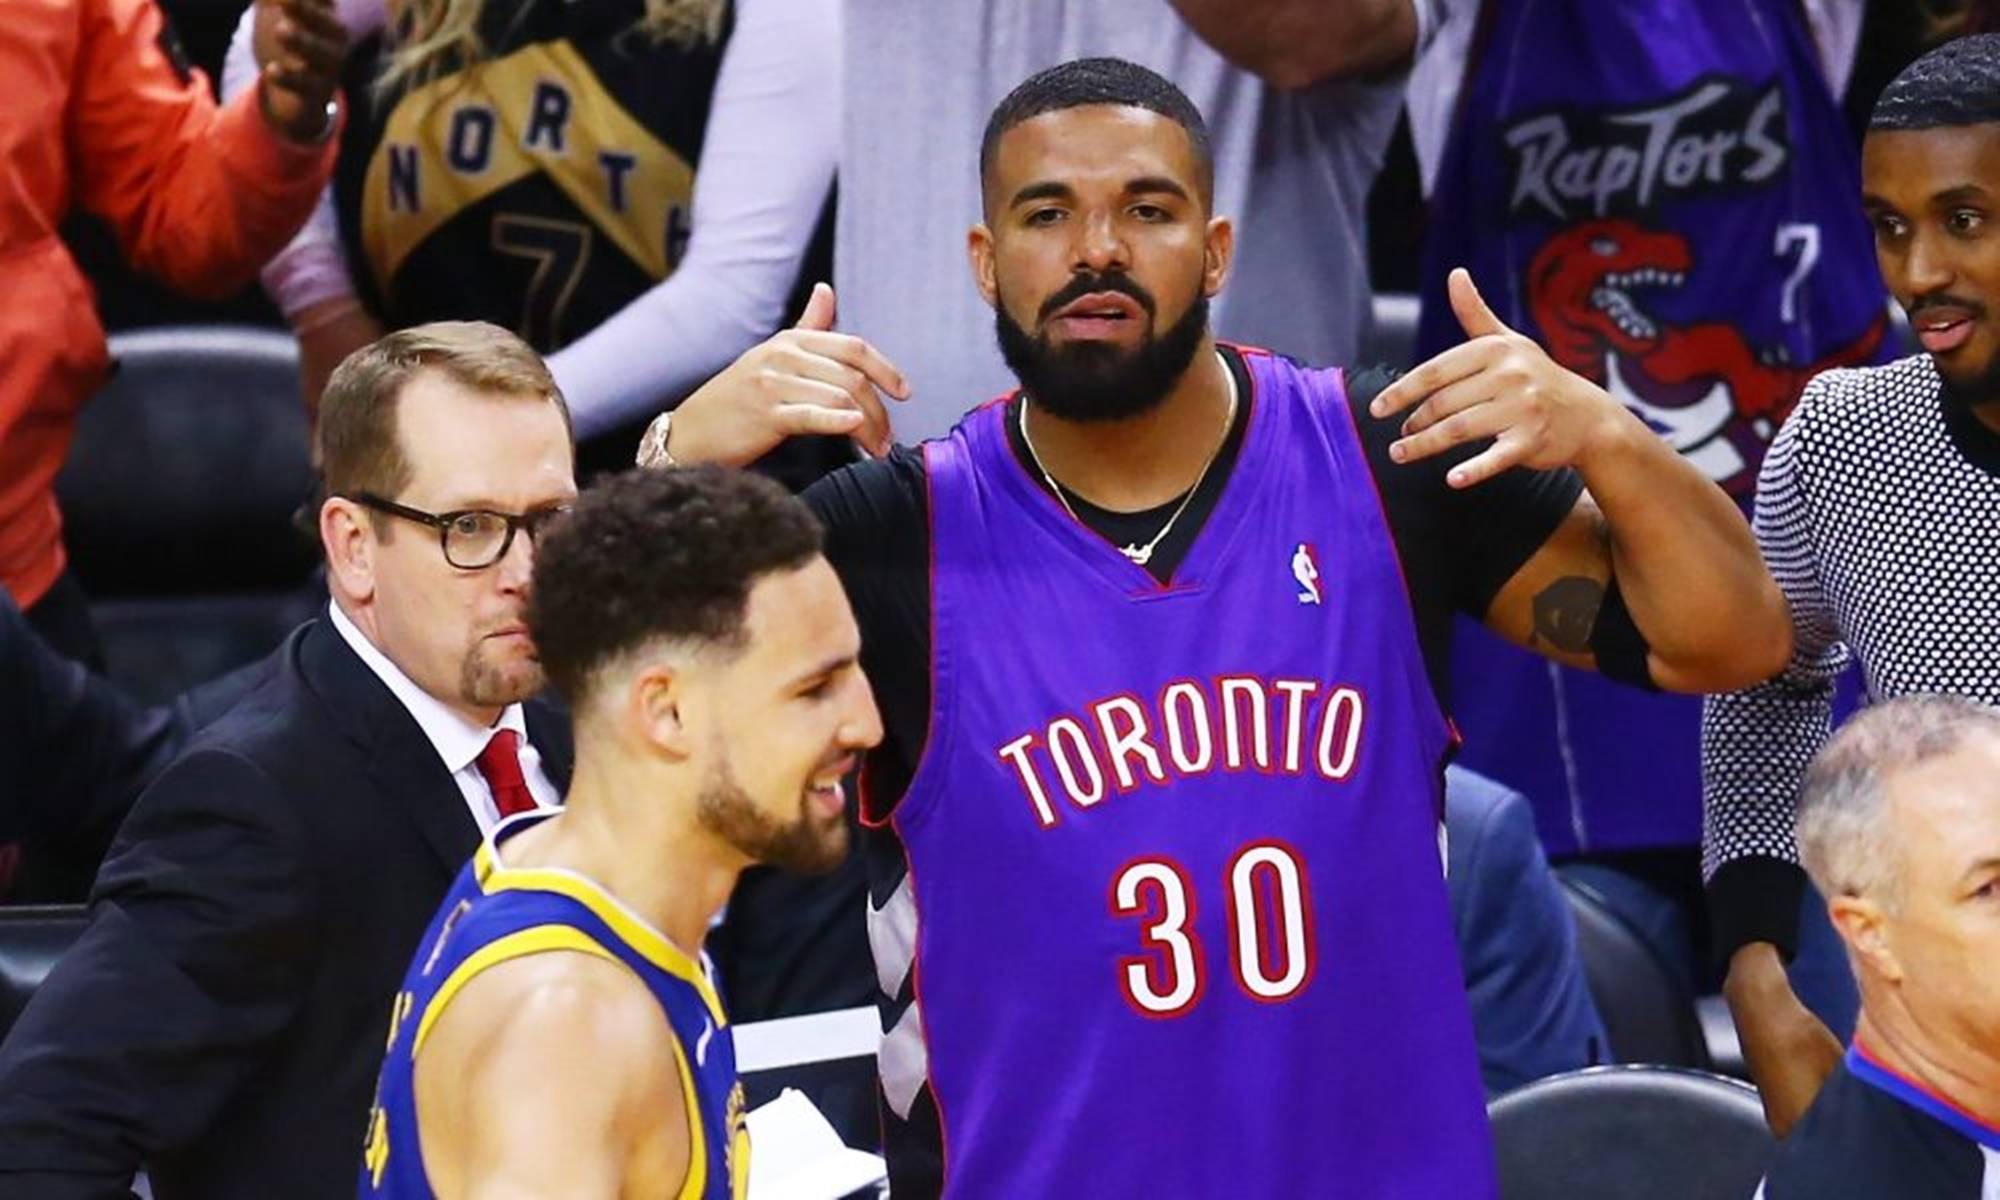 Drake Klay Thompson Trolling NBA Finals